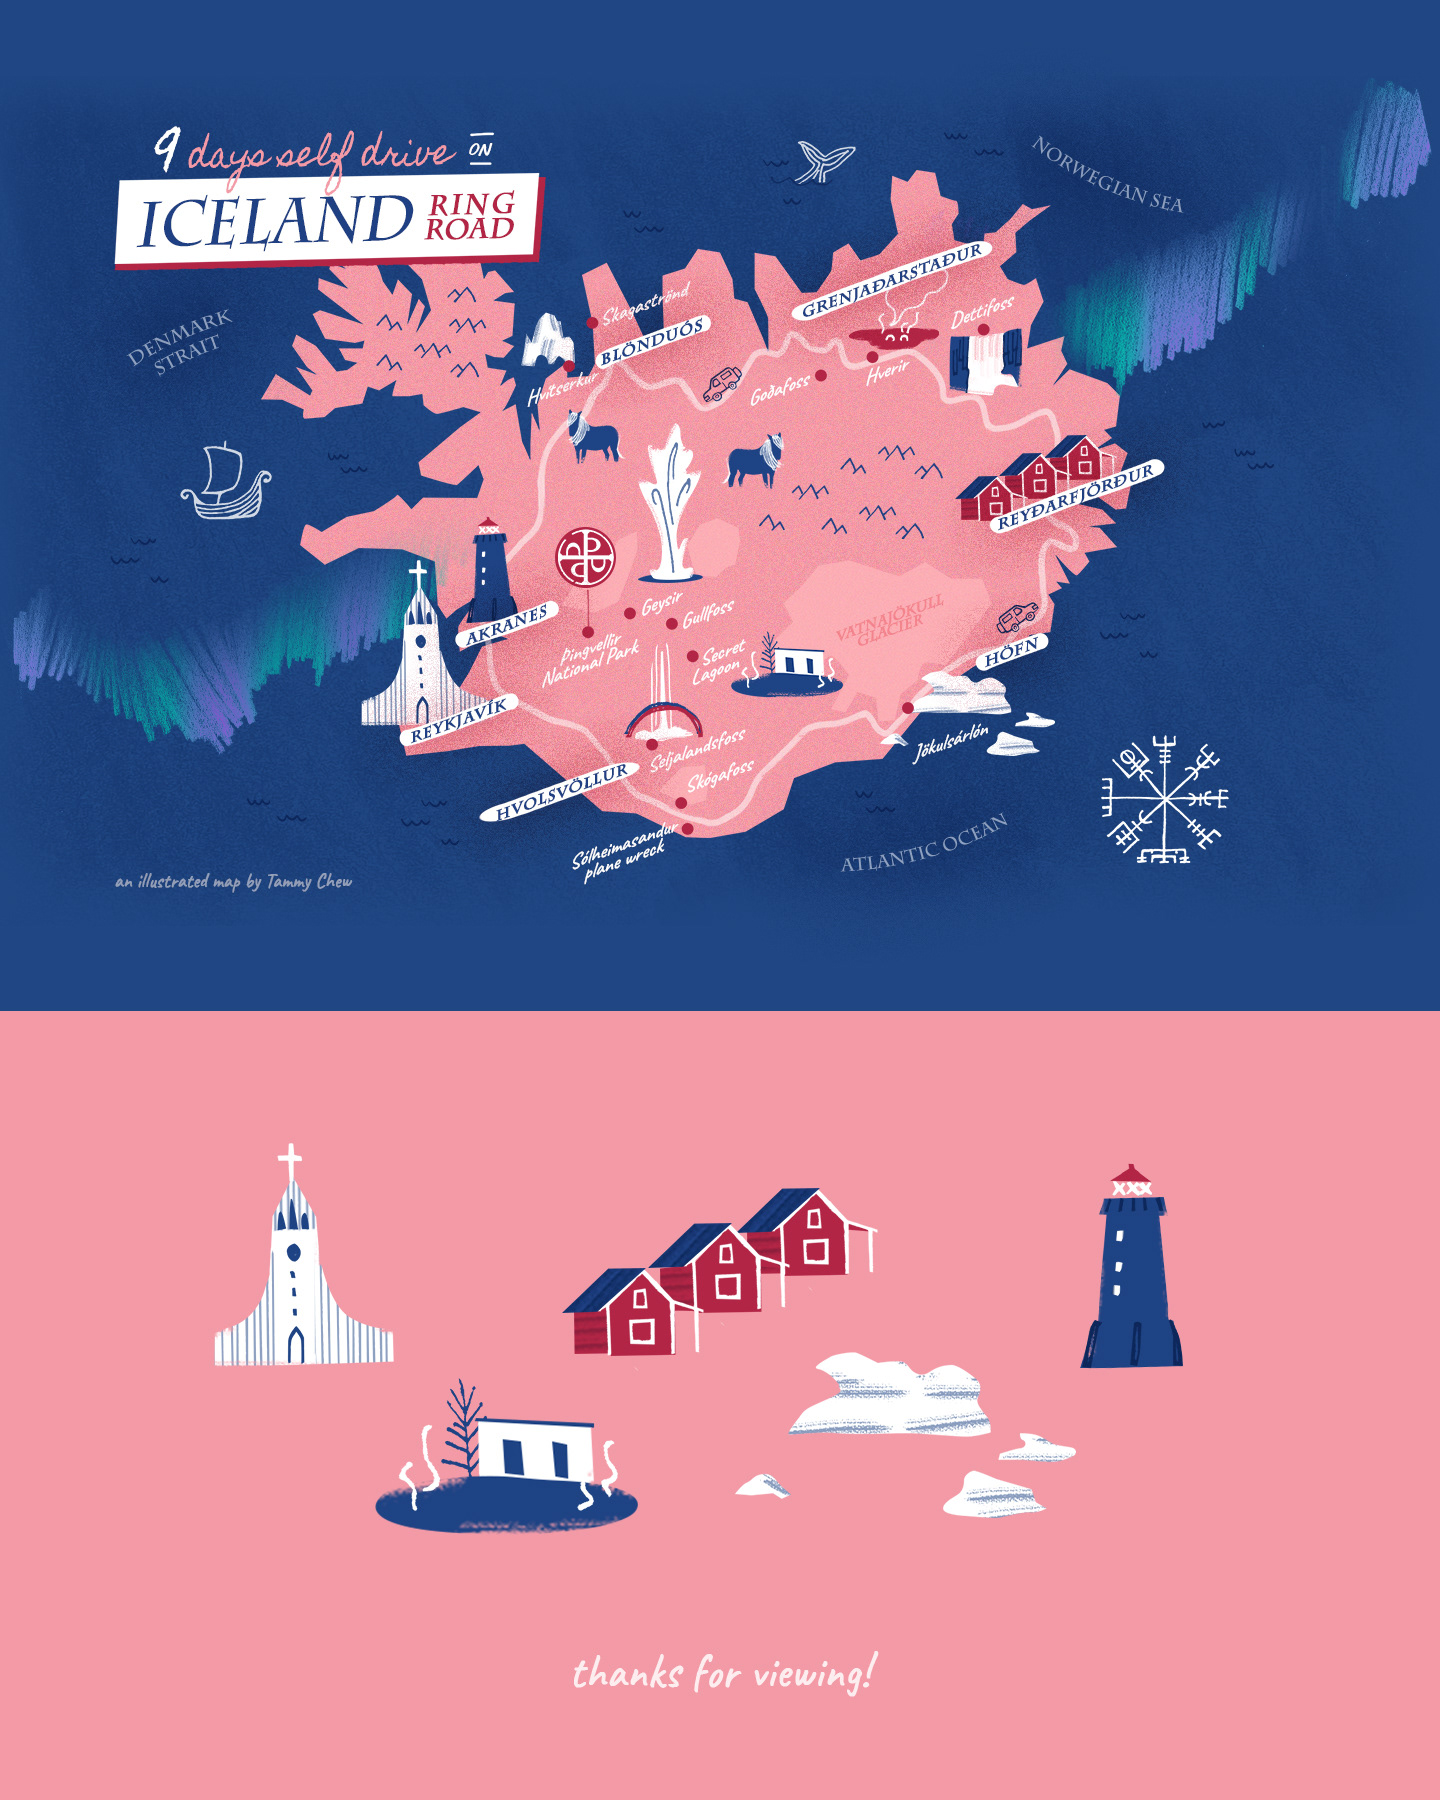 Illustrated map: Iceland on Behance on poland map, mexico map, netherlands map, greece map, united kingdom map, cuba map, europe map, hungary map, scotland map, road map, germany map, japan map, india map, russia map, ireland map, italy map, keflavik airport map, spain map, scandinavia map, greenland map,